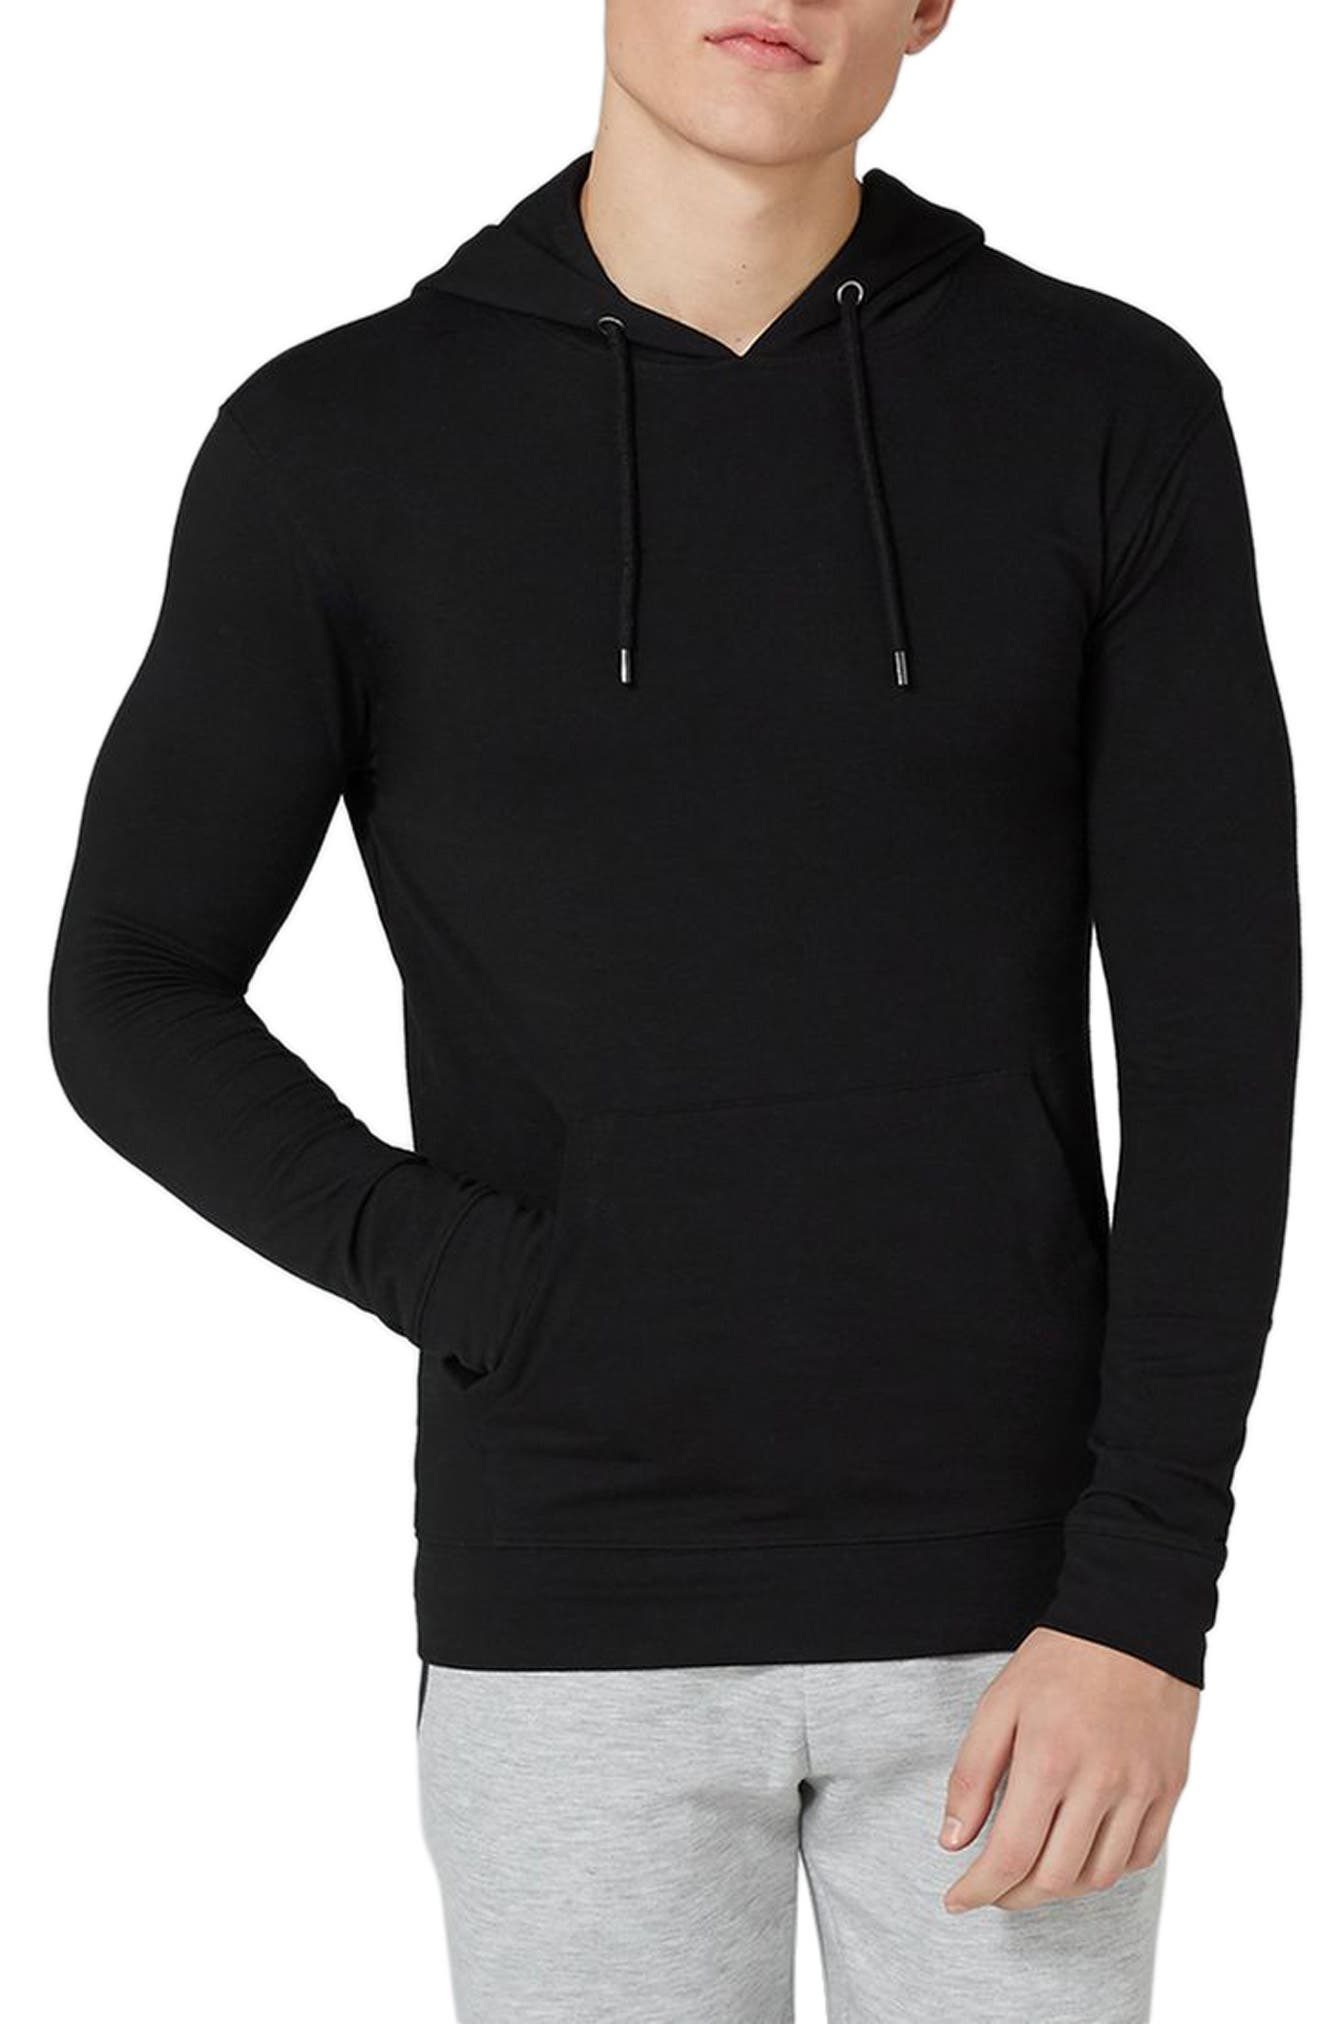 Ultra Muscle Fit Hoodie,                             Main thumbnail 1, color,                             Black